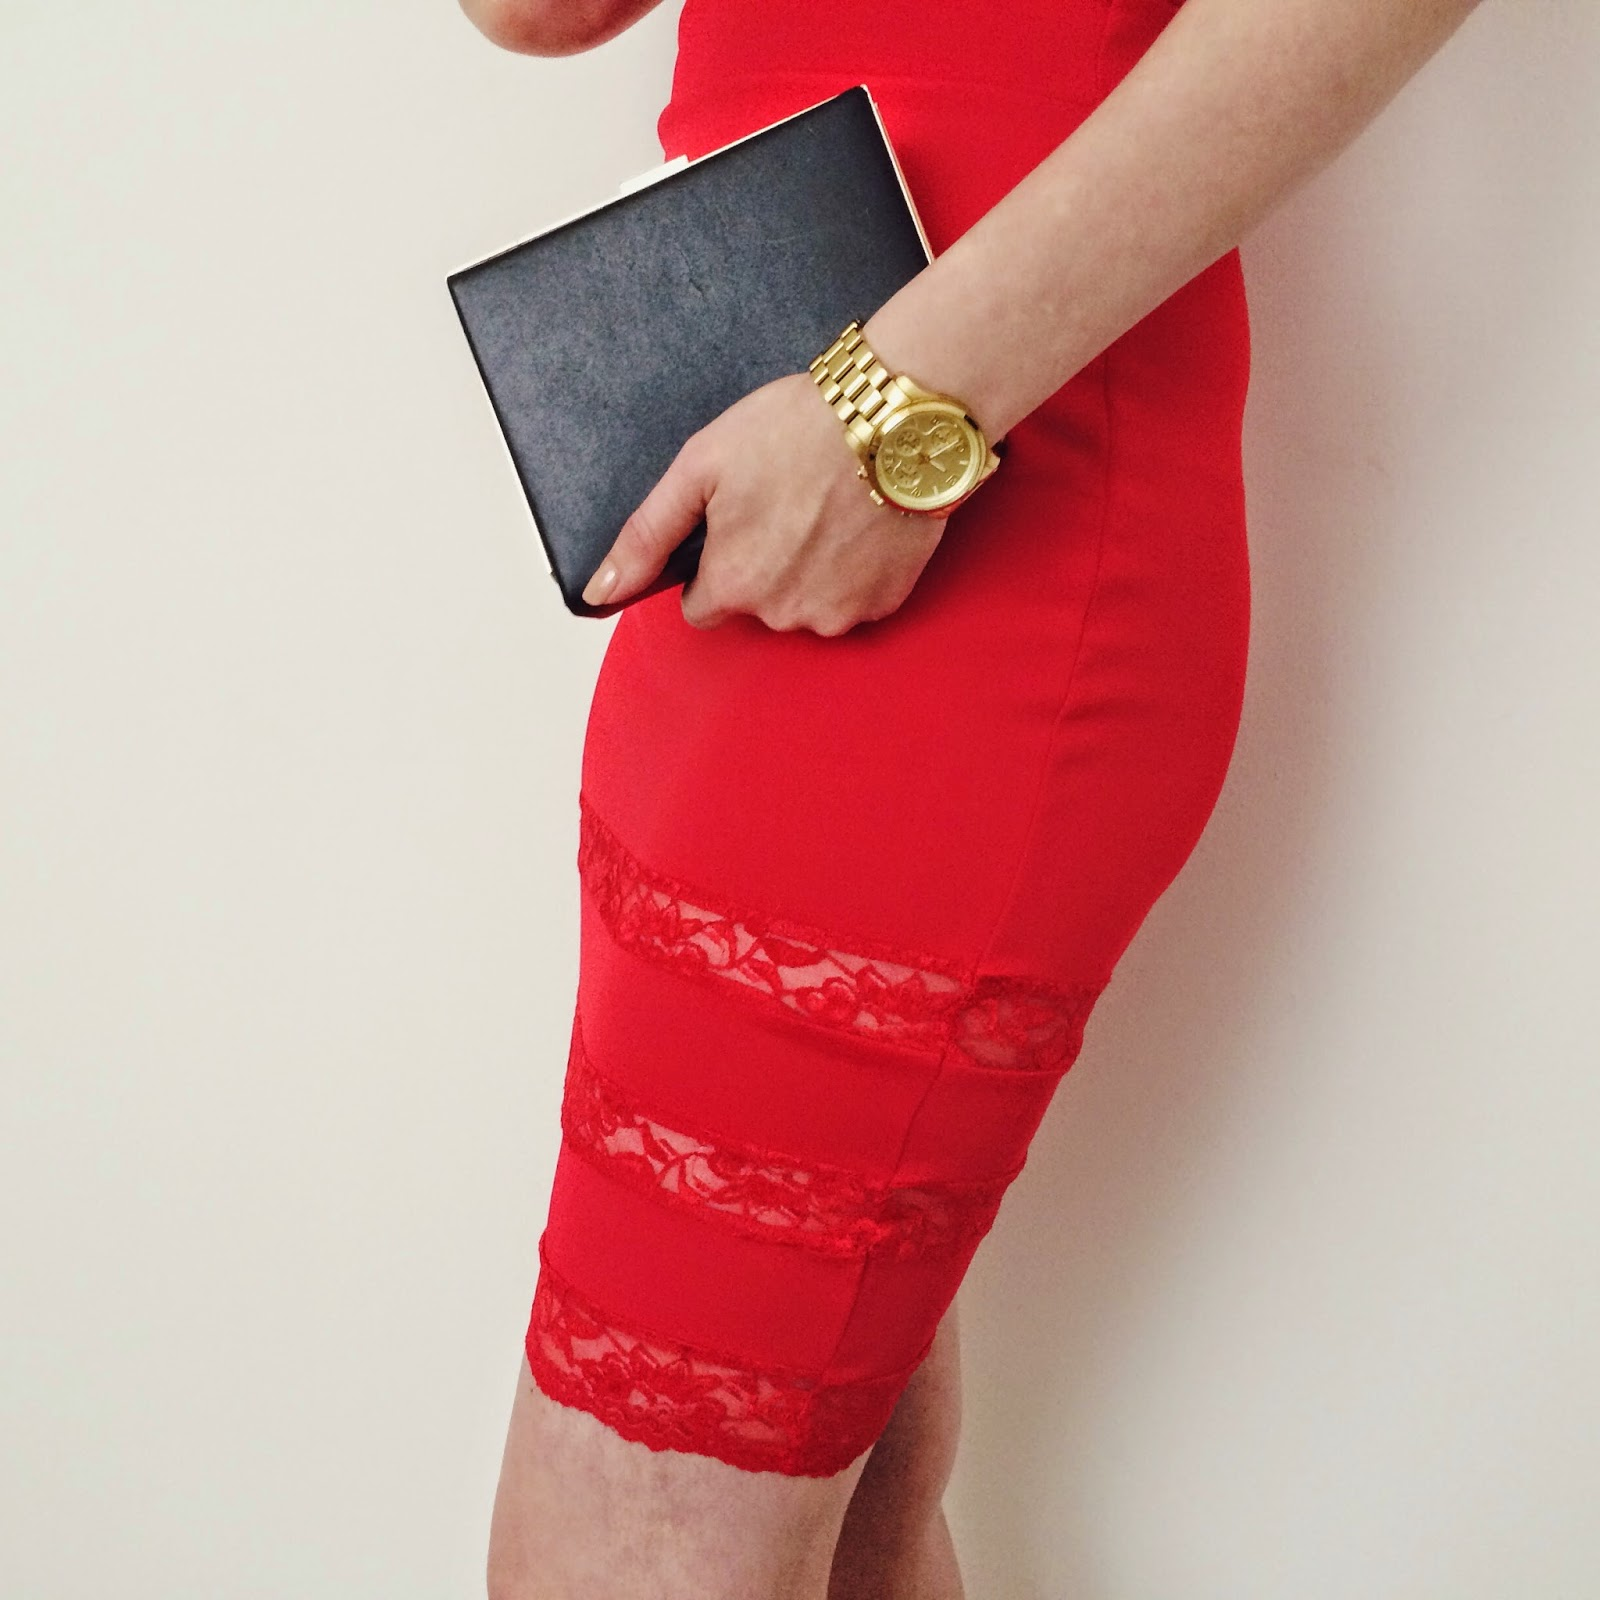 Celeblook review, Red lace dress, fashion bloggers, cocktail wear, FashionFake